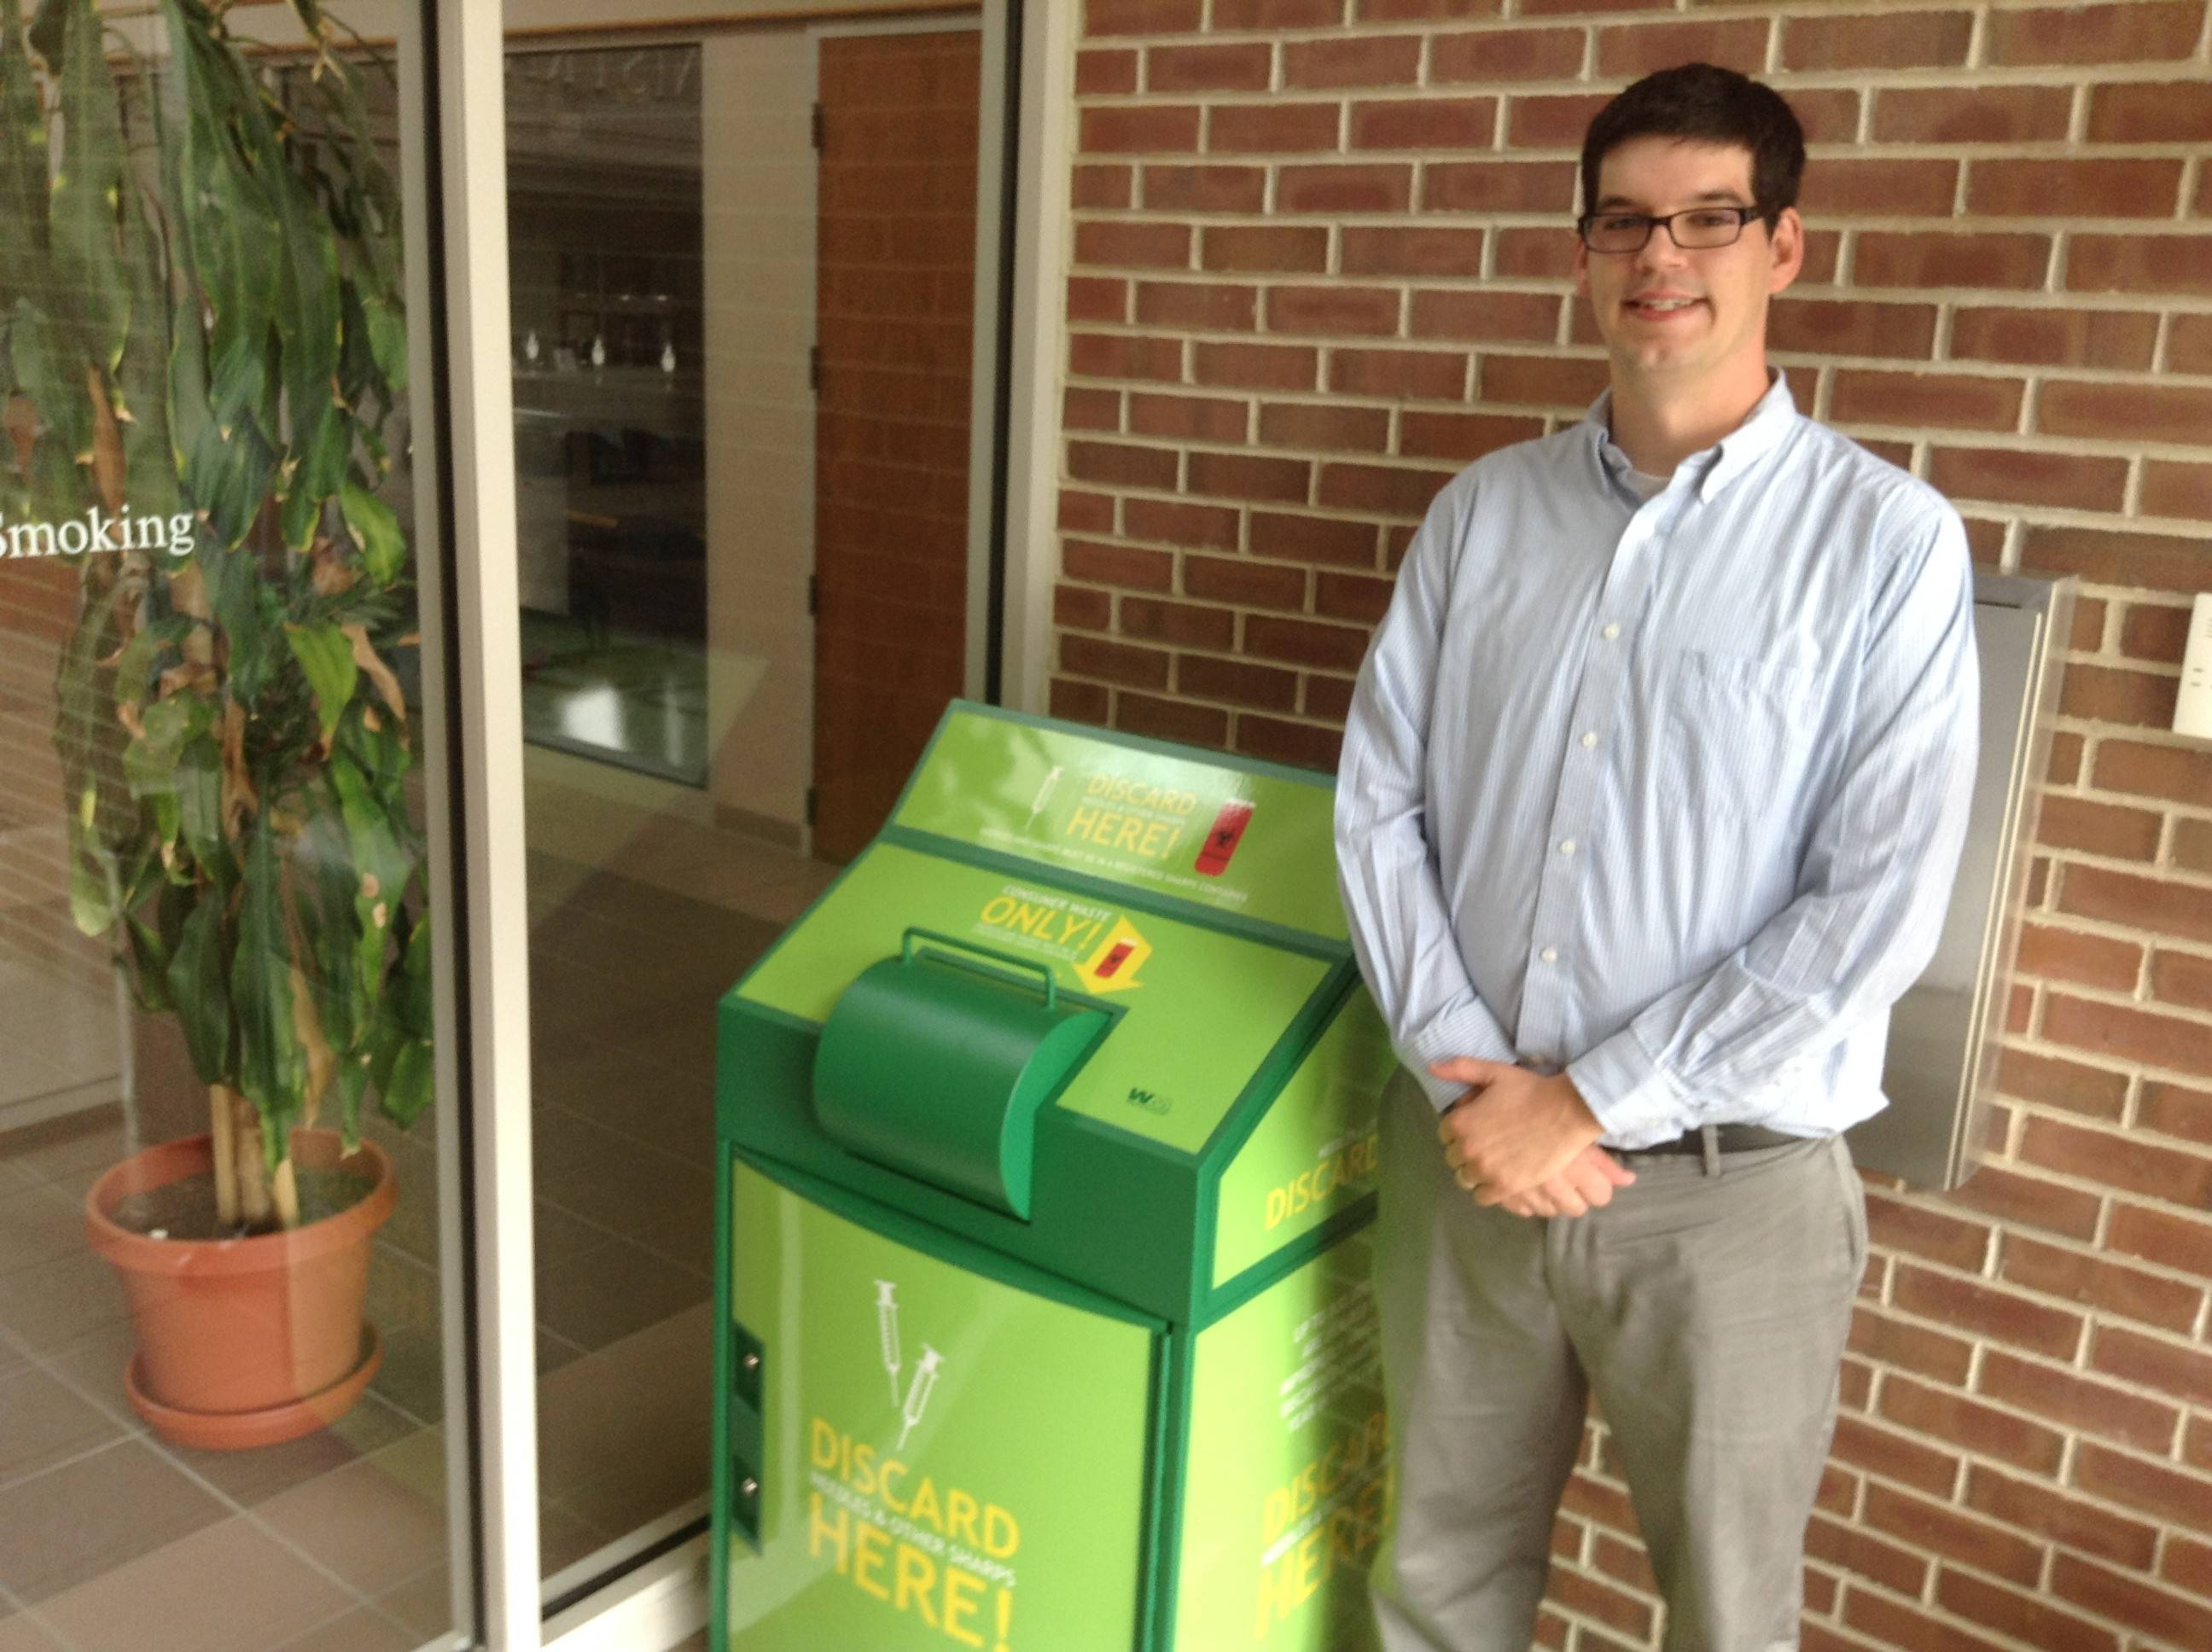 Gurnee residents may use this medical waste receptacle at village hall. Gurnee's assistant to the village administrator, Erik Jensen, said Friday the container has been used frequently since debuting this month.